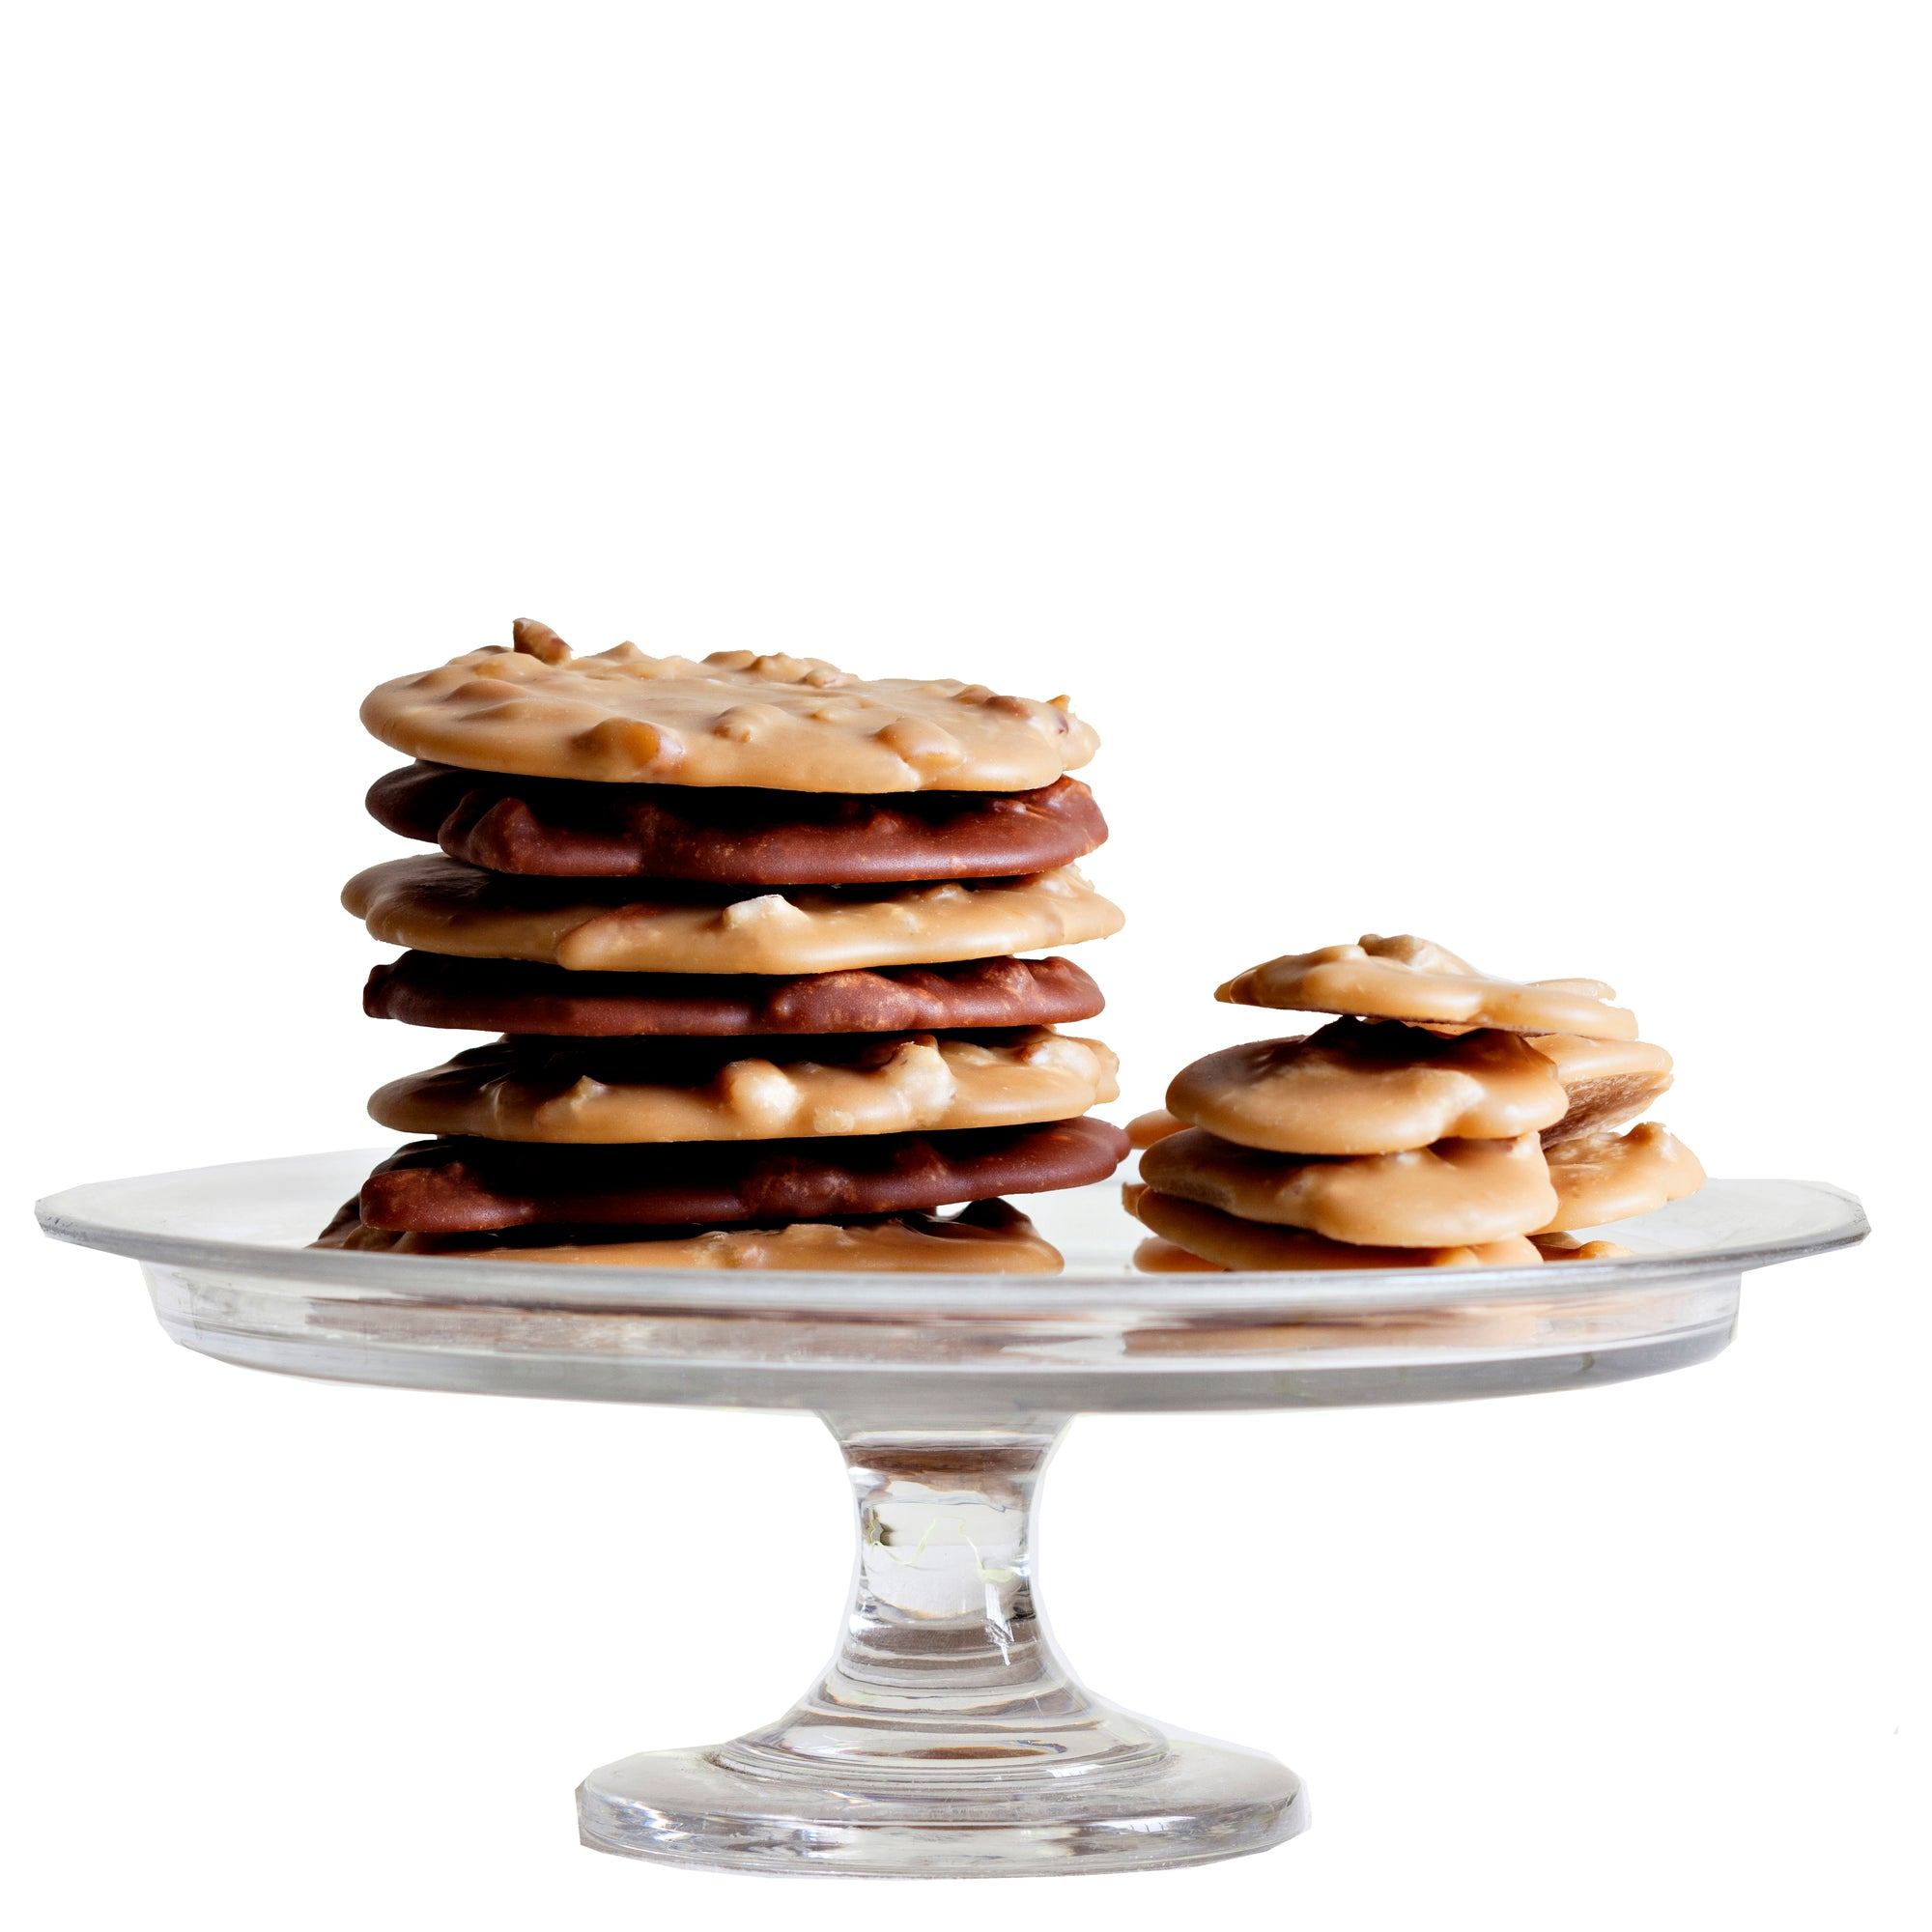 Leah's Pralines - Pecan Pralines on a cakestand